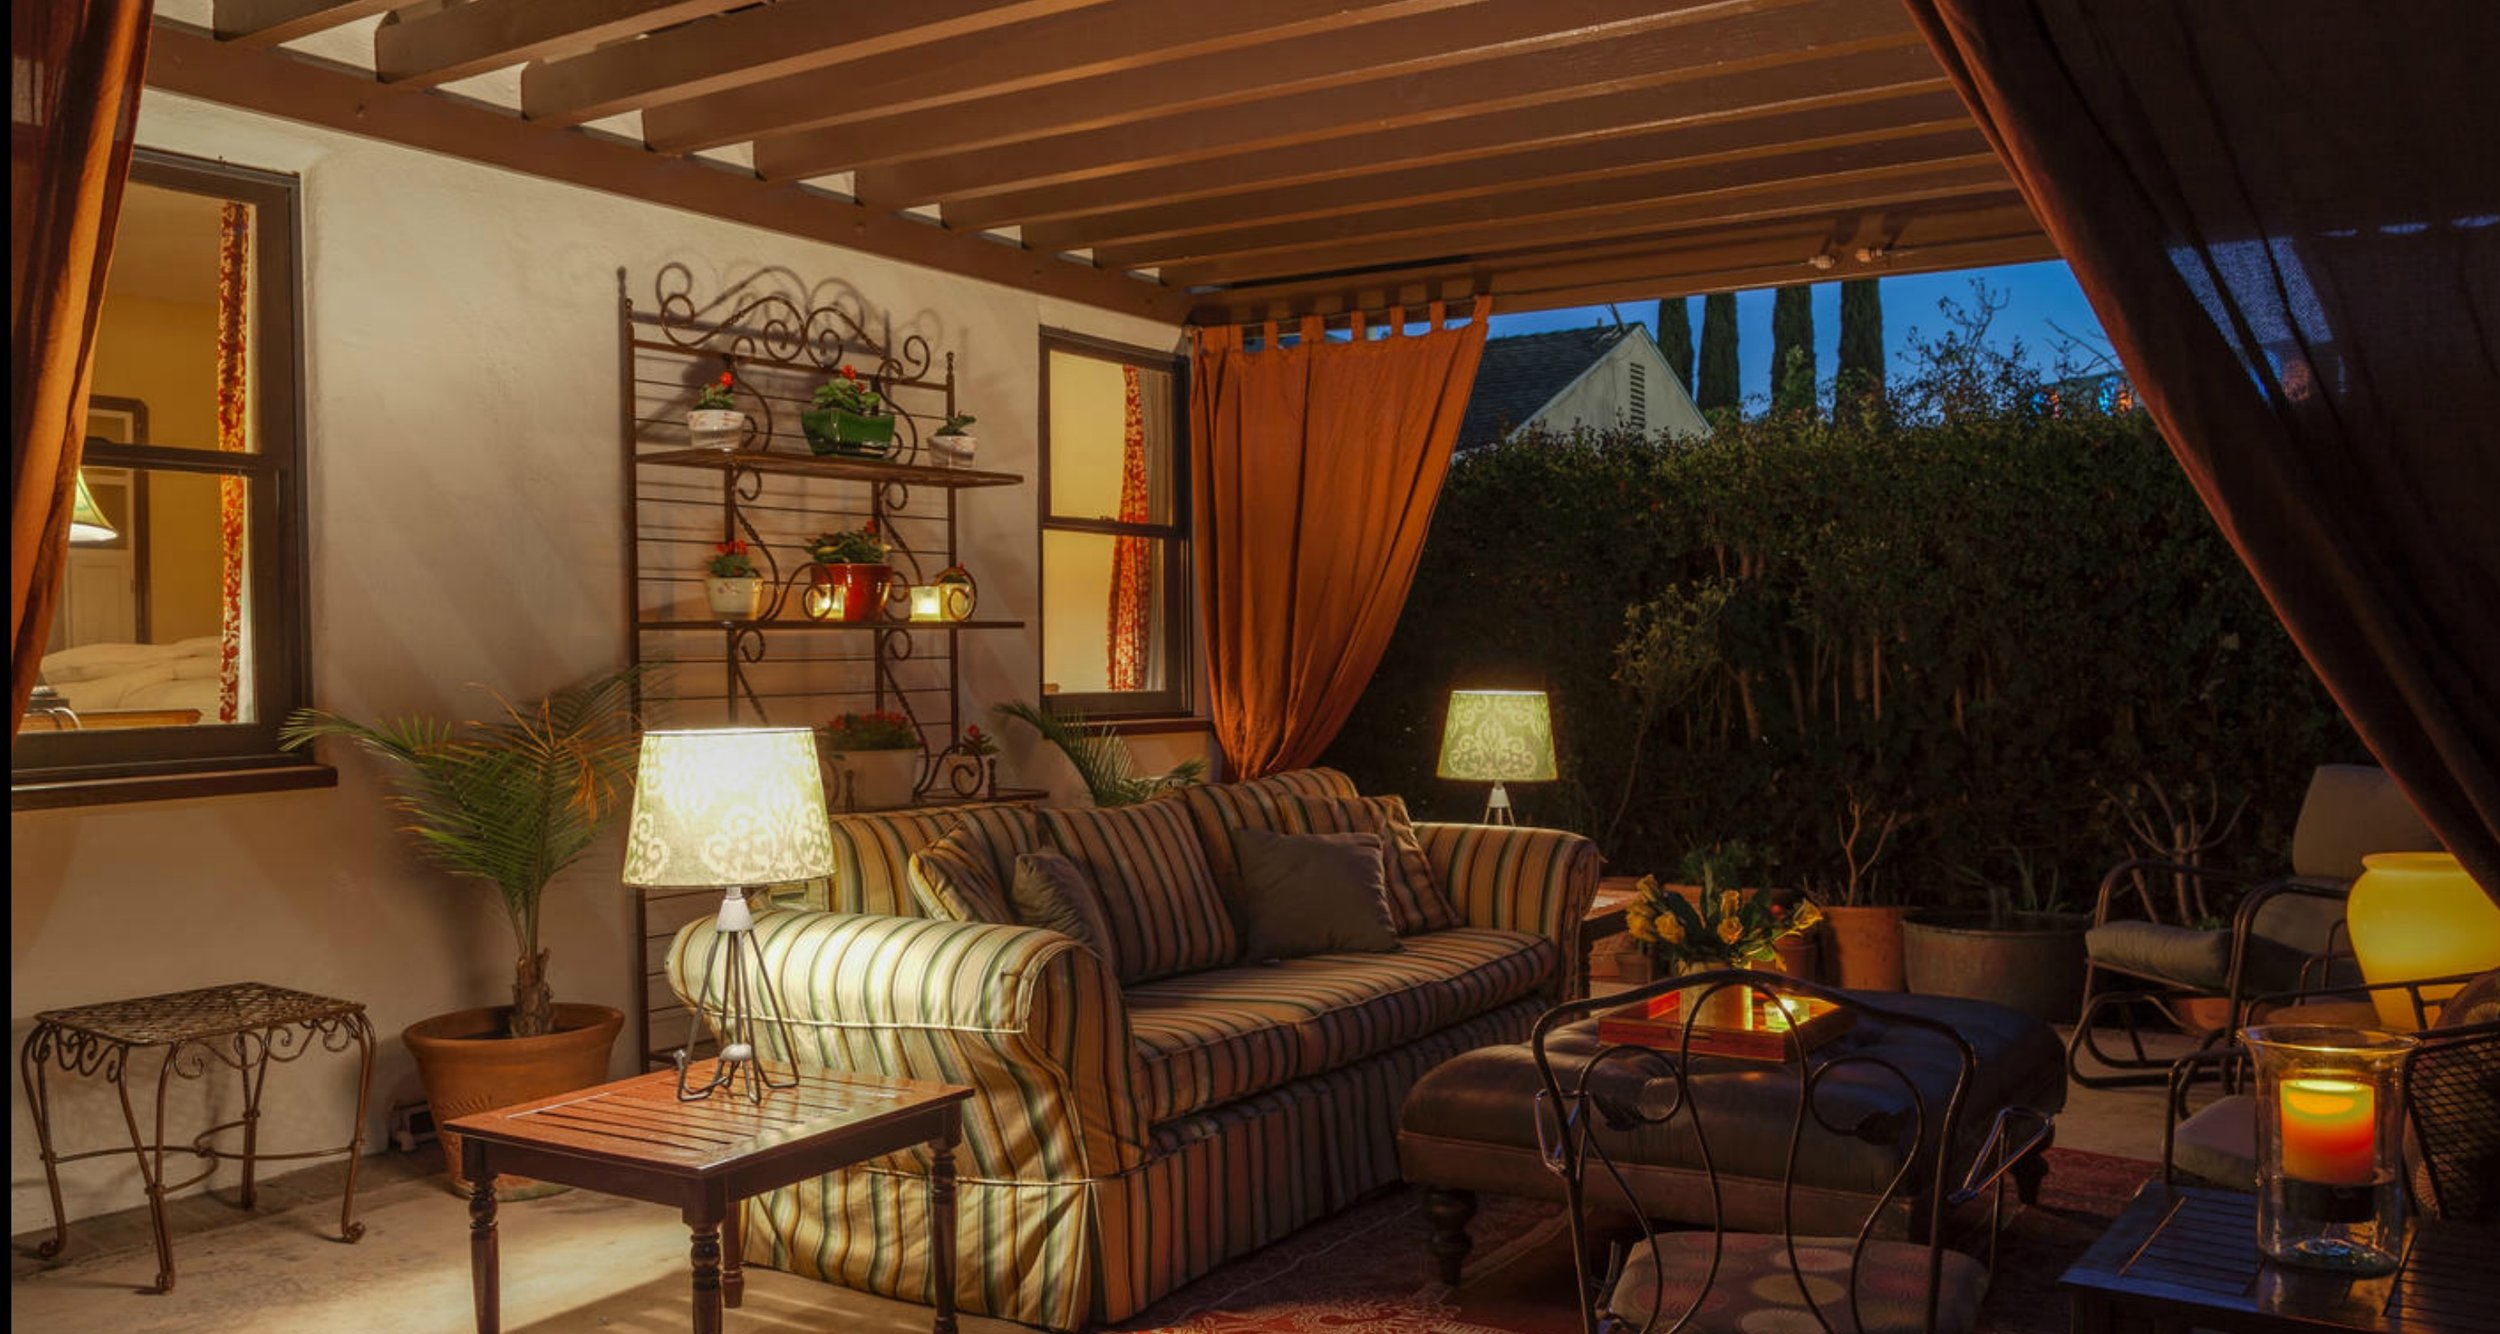 975 Schumacher patio ext dusk.jpg